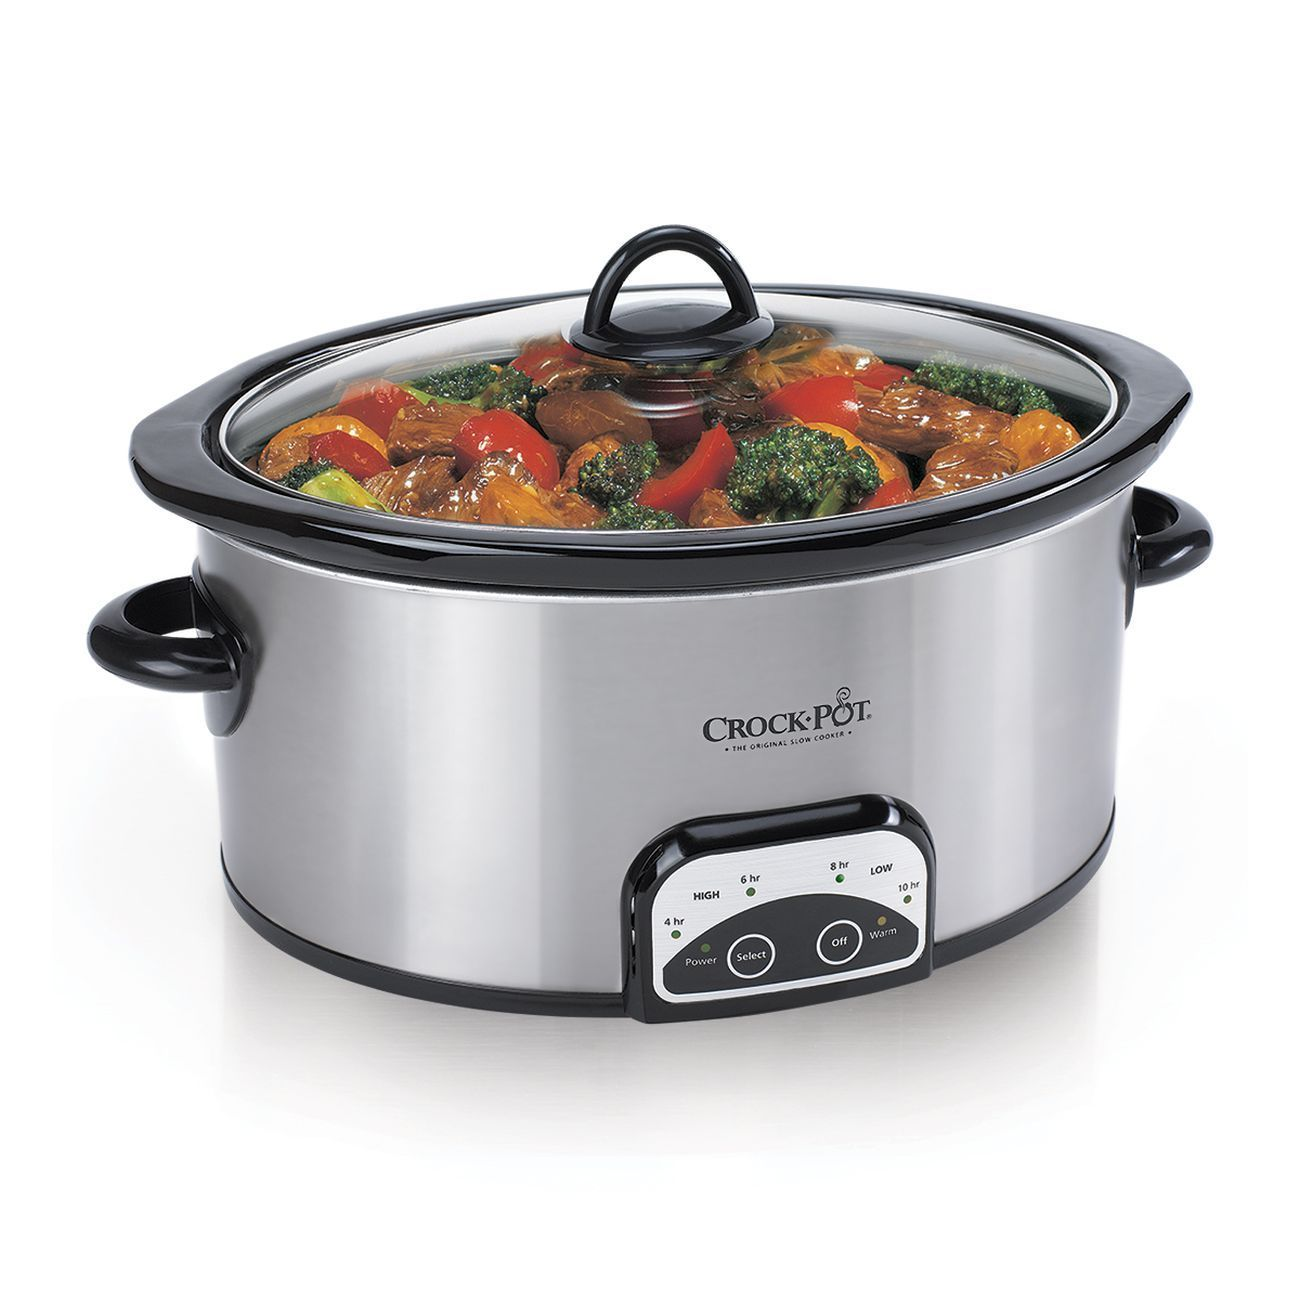 Jarden Crock-Pot 4-Quart Digital Slow Cooker, Silver